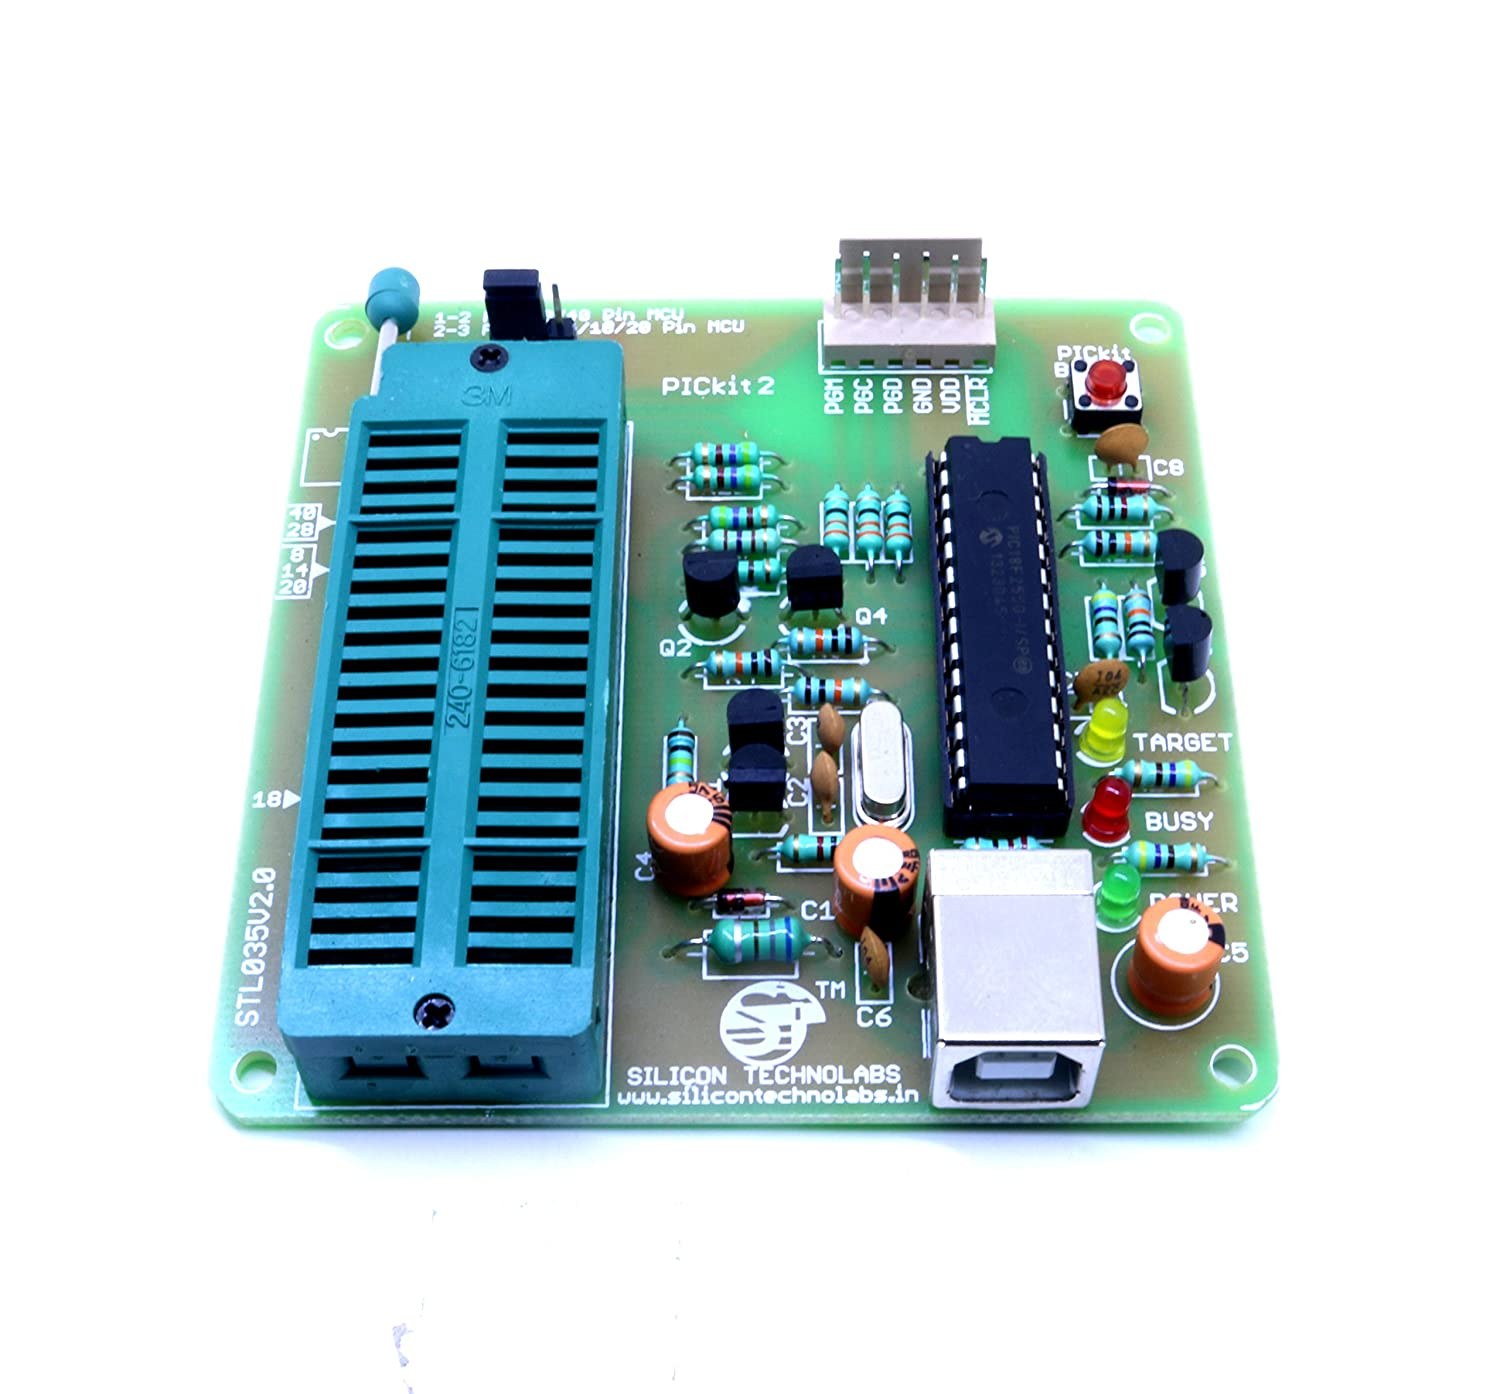 Silicon Technolabs Pickit2 Pic Microcontroller Usb Atmel 8051 Flash Based Programmer Electronic Electronics